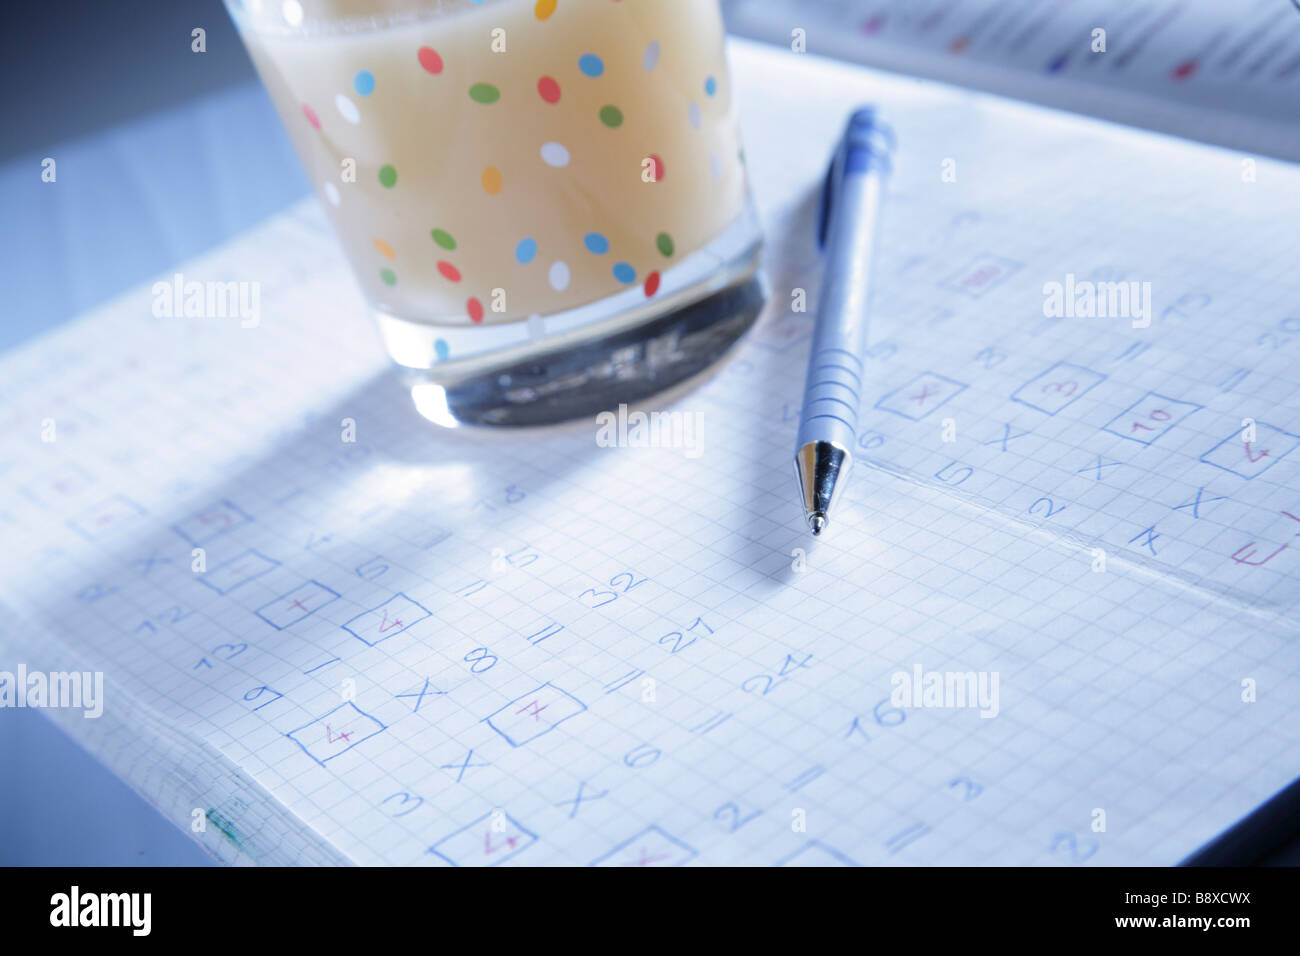 exercise book - Stock Image